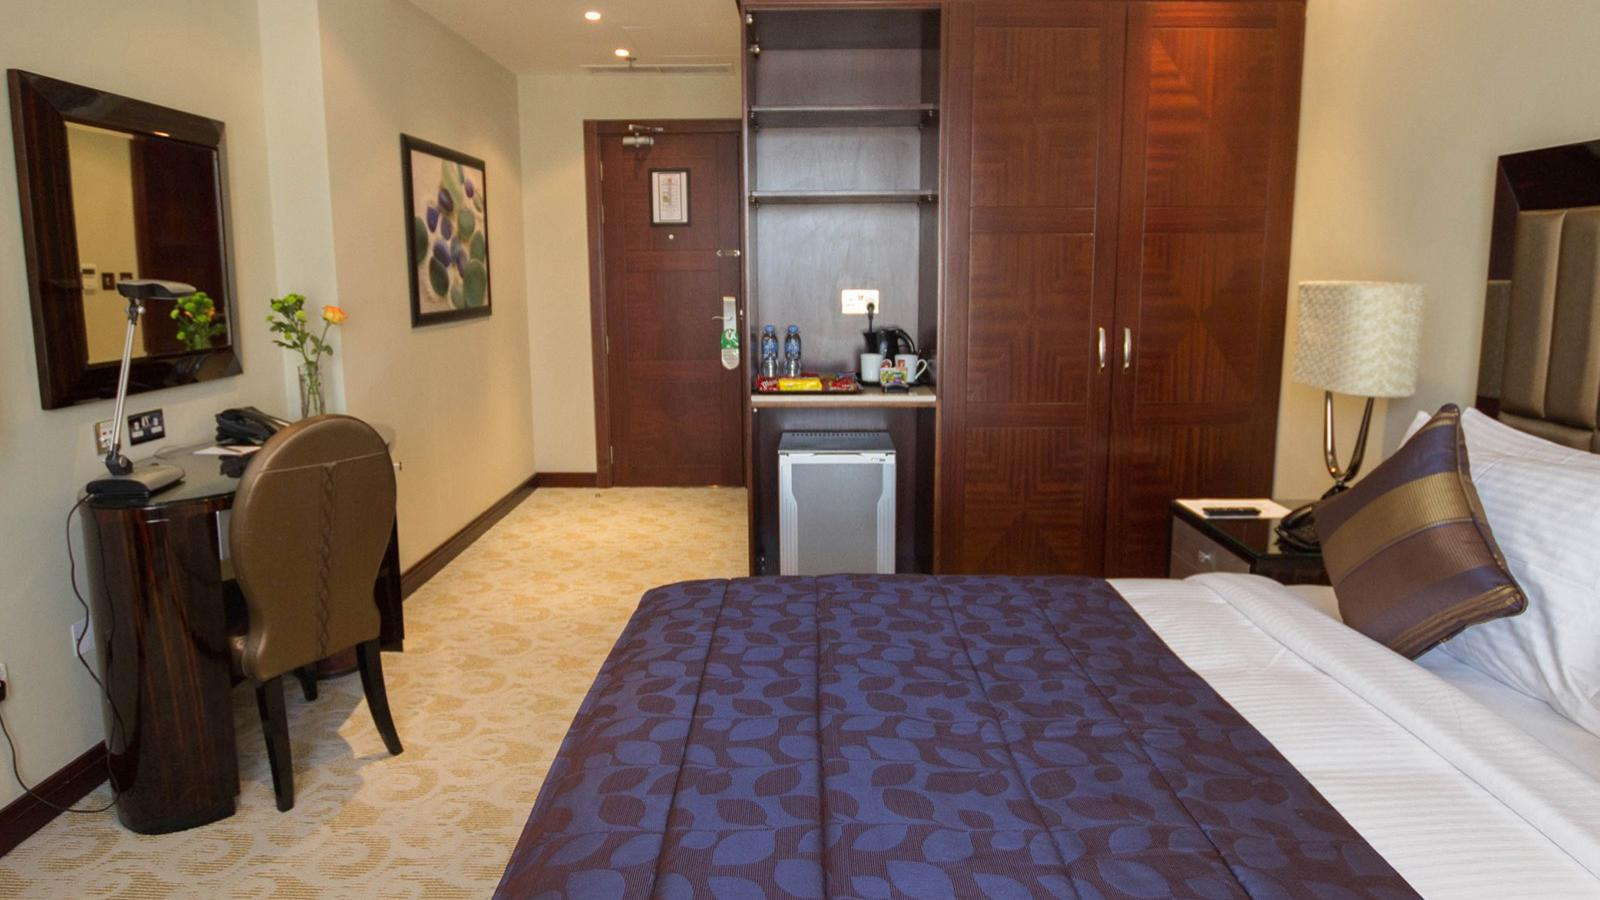 Deluxe Room side at Strato Hotel by Warwick